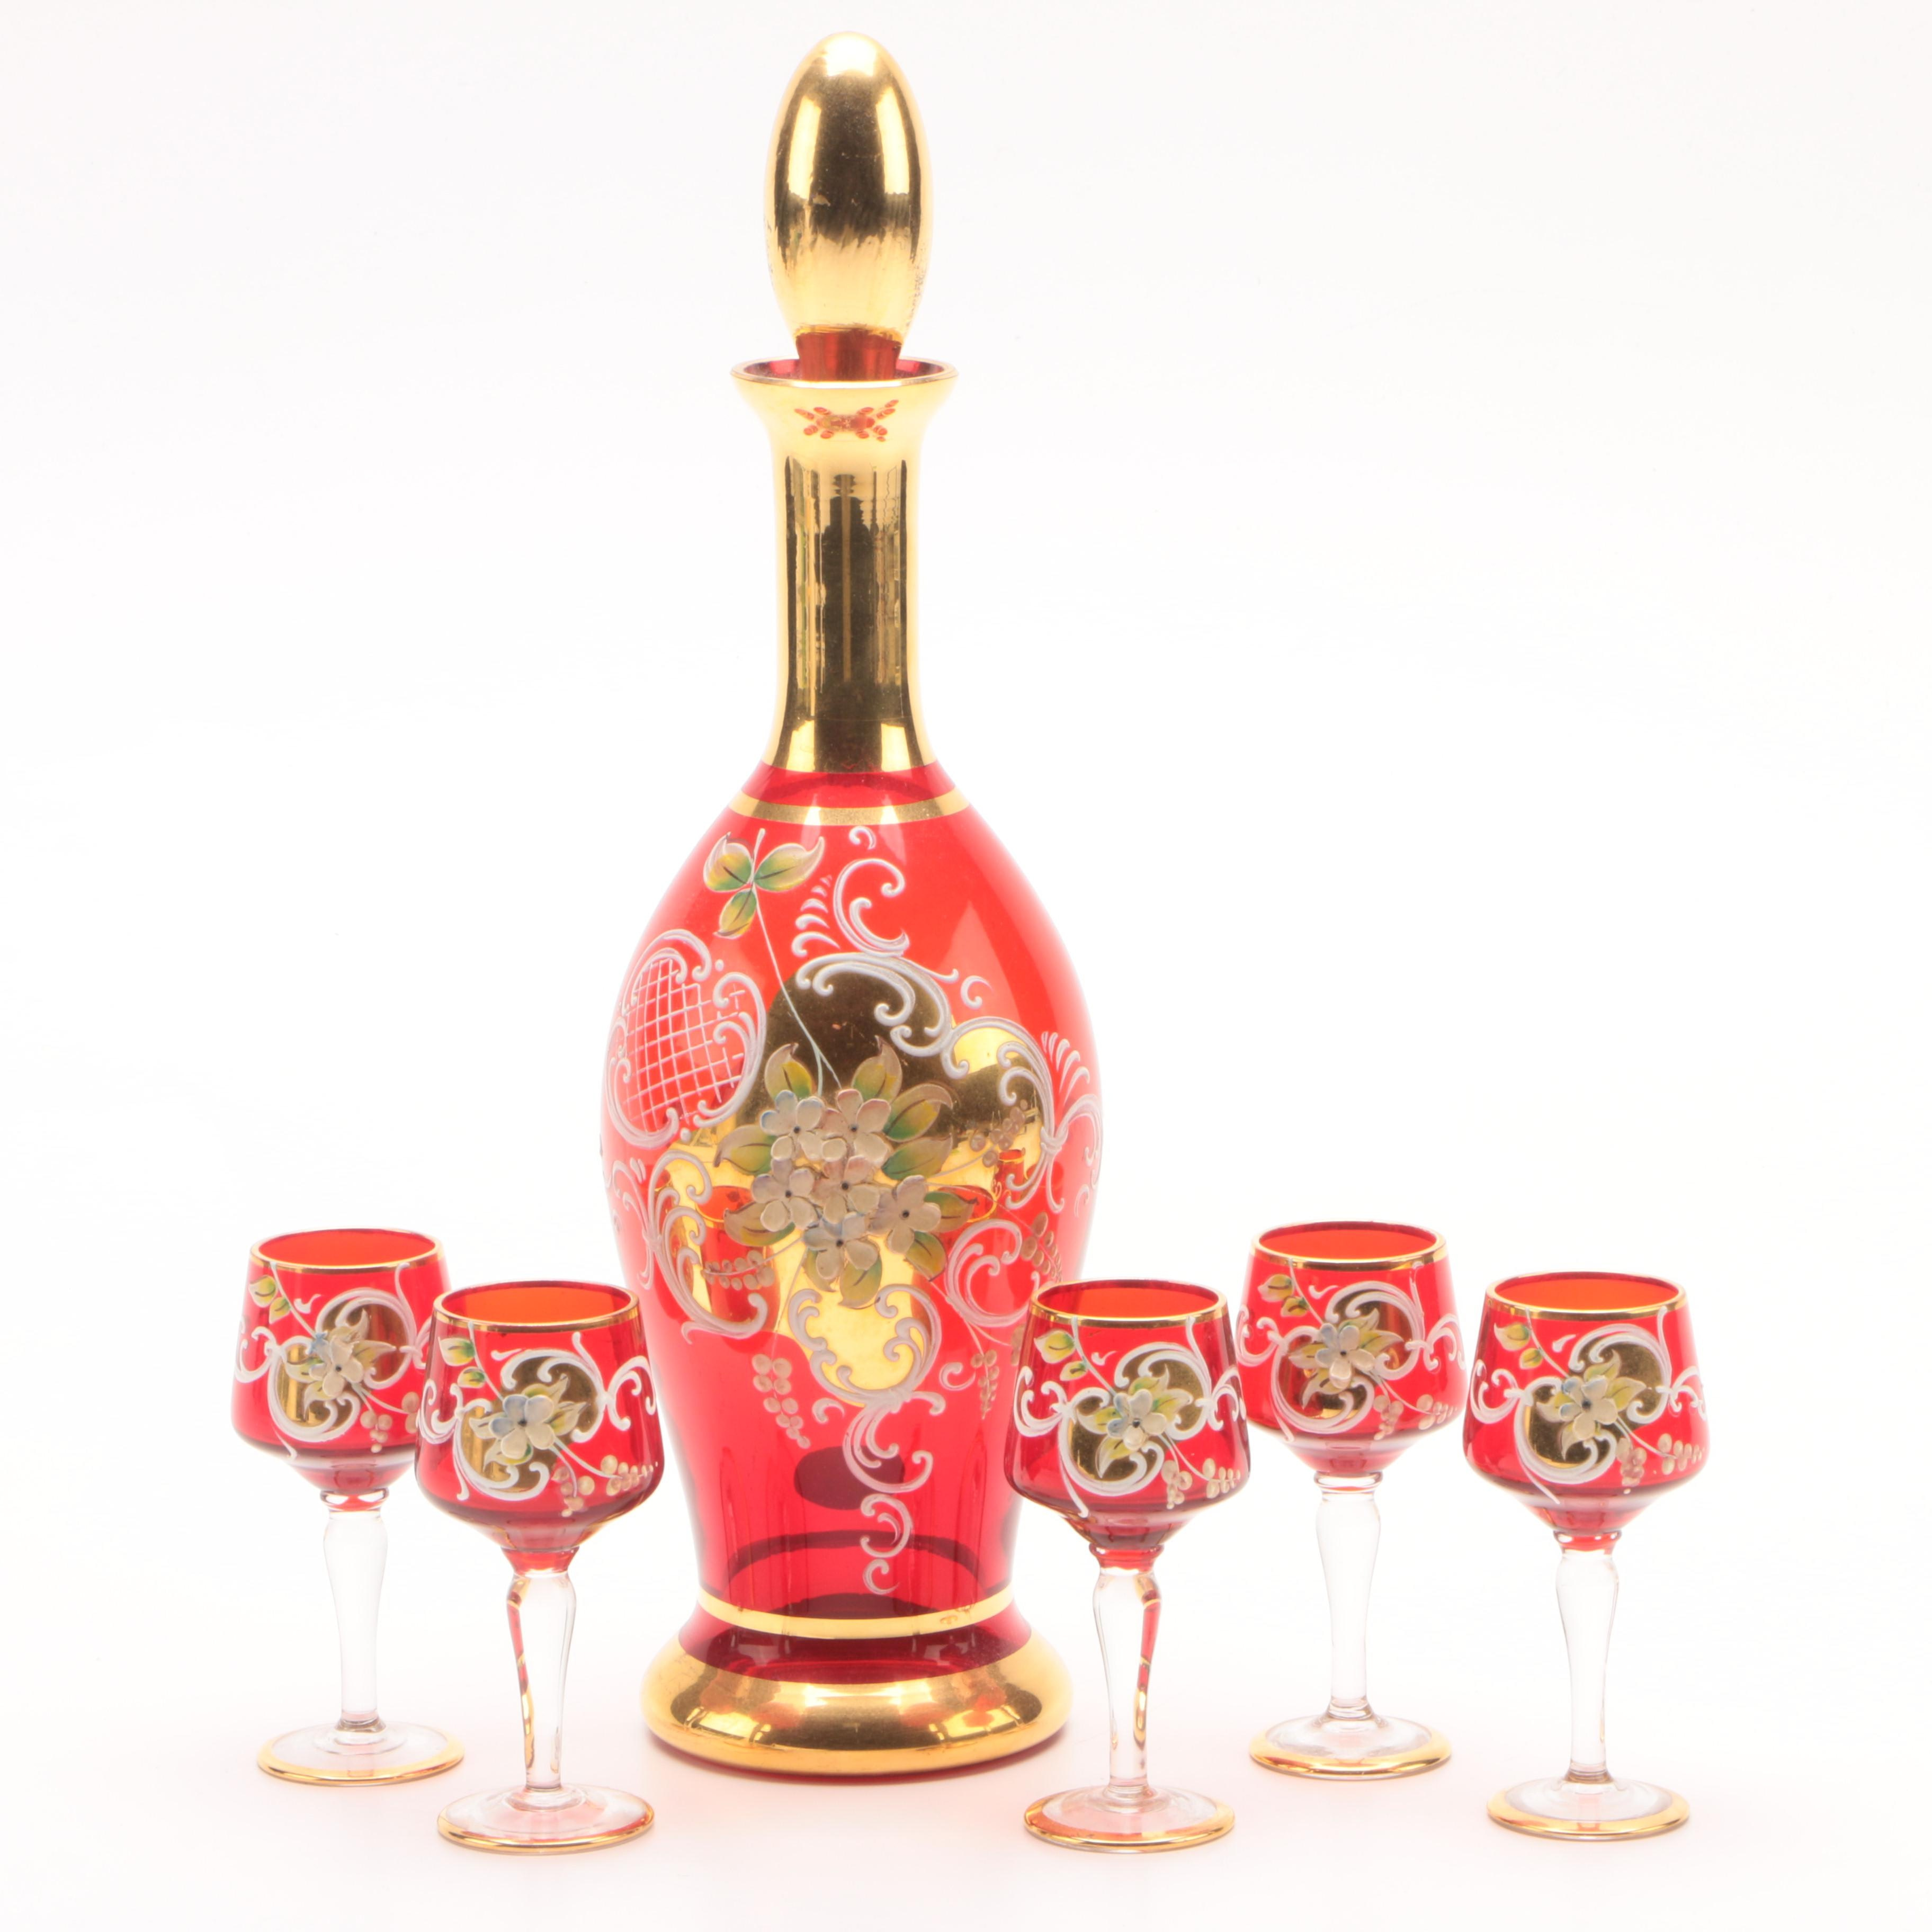 Vintage Venetian Crystal Ruby Red Painted Decanter and Cordial Glasses